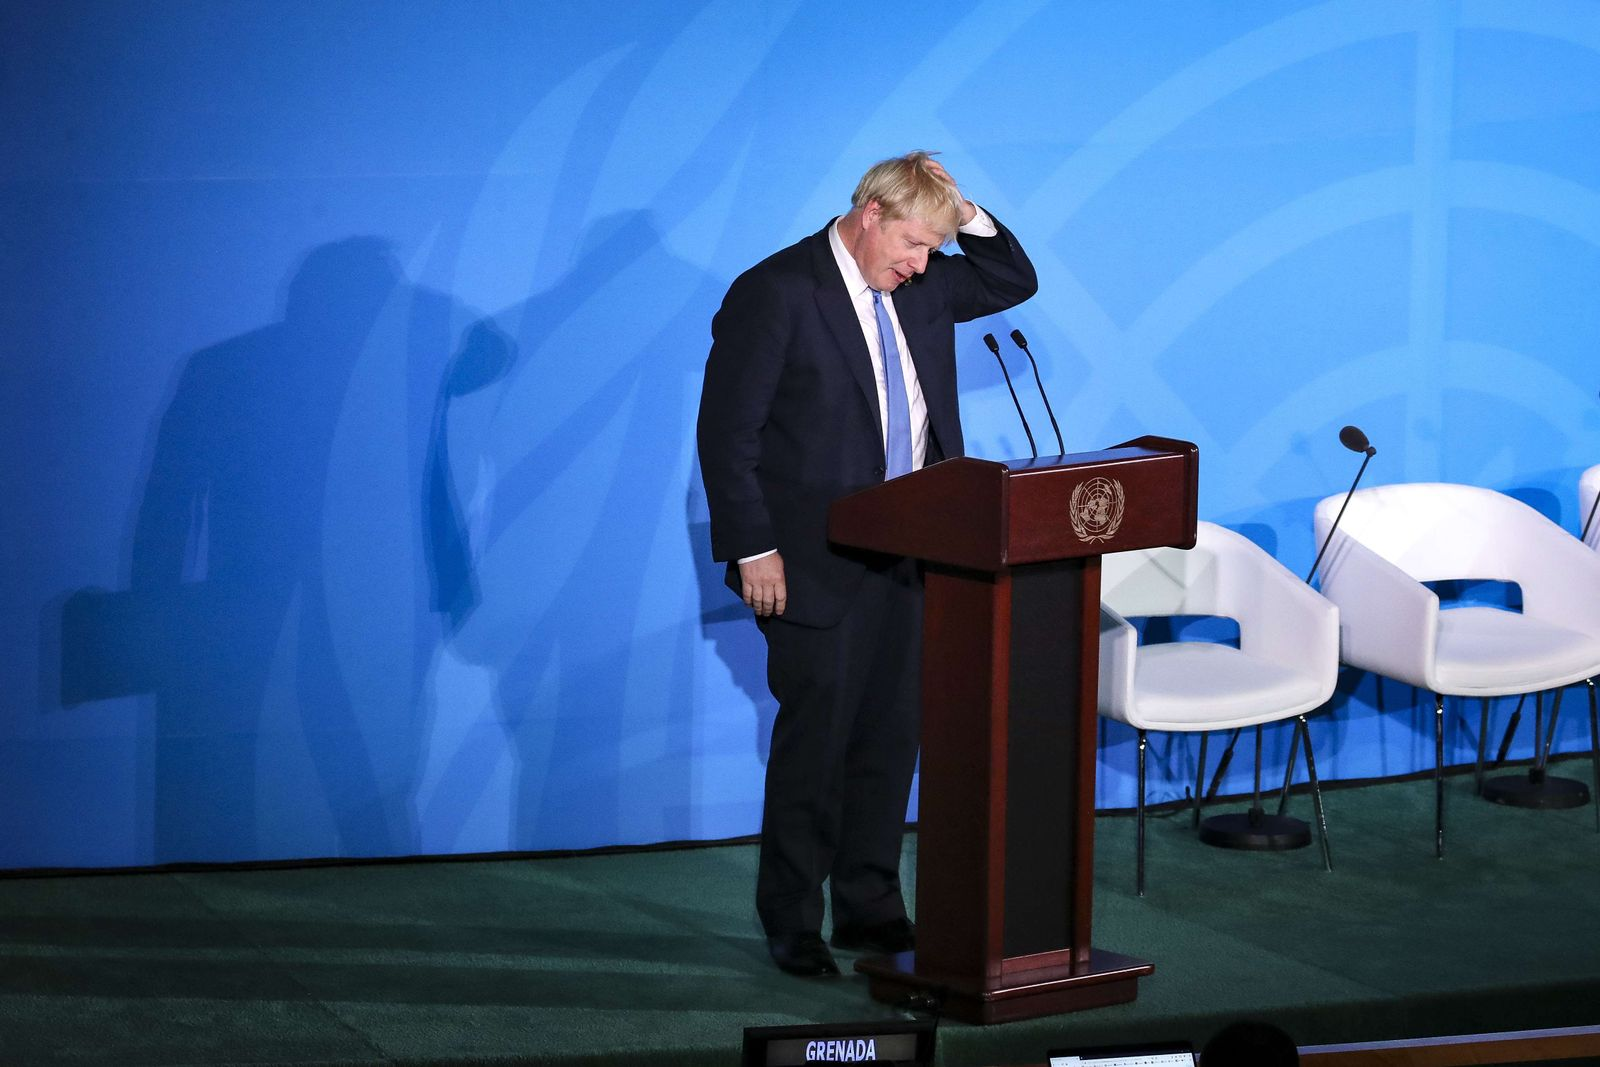 US-WORLD-LEADERS-GATHER-FOR-UNITED-NATIONS-CLIMATE-SUMMIT